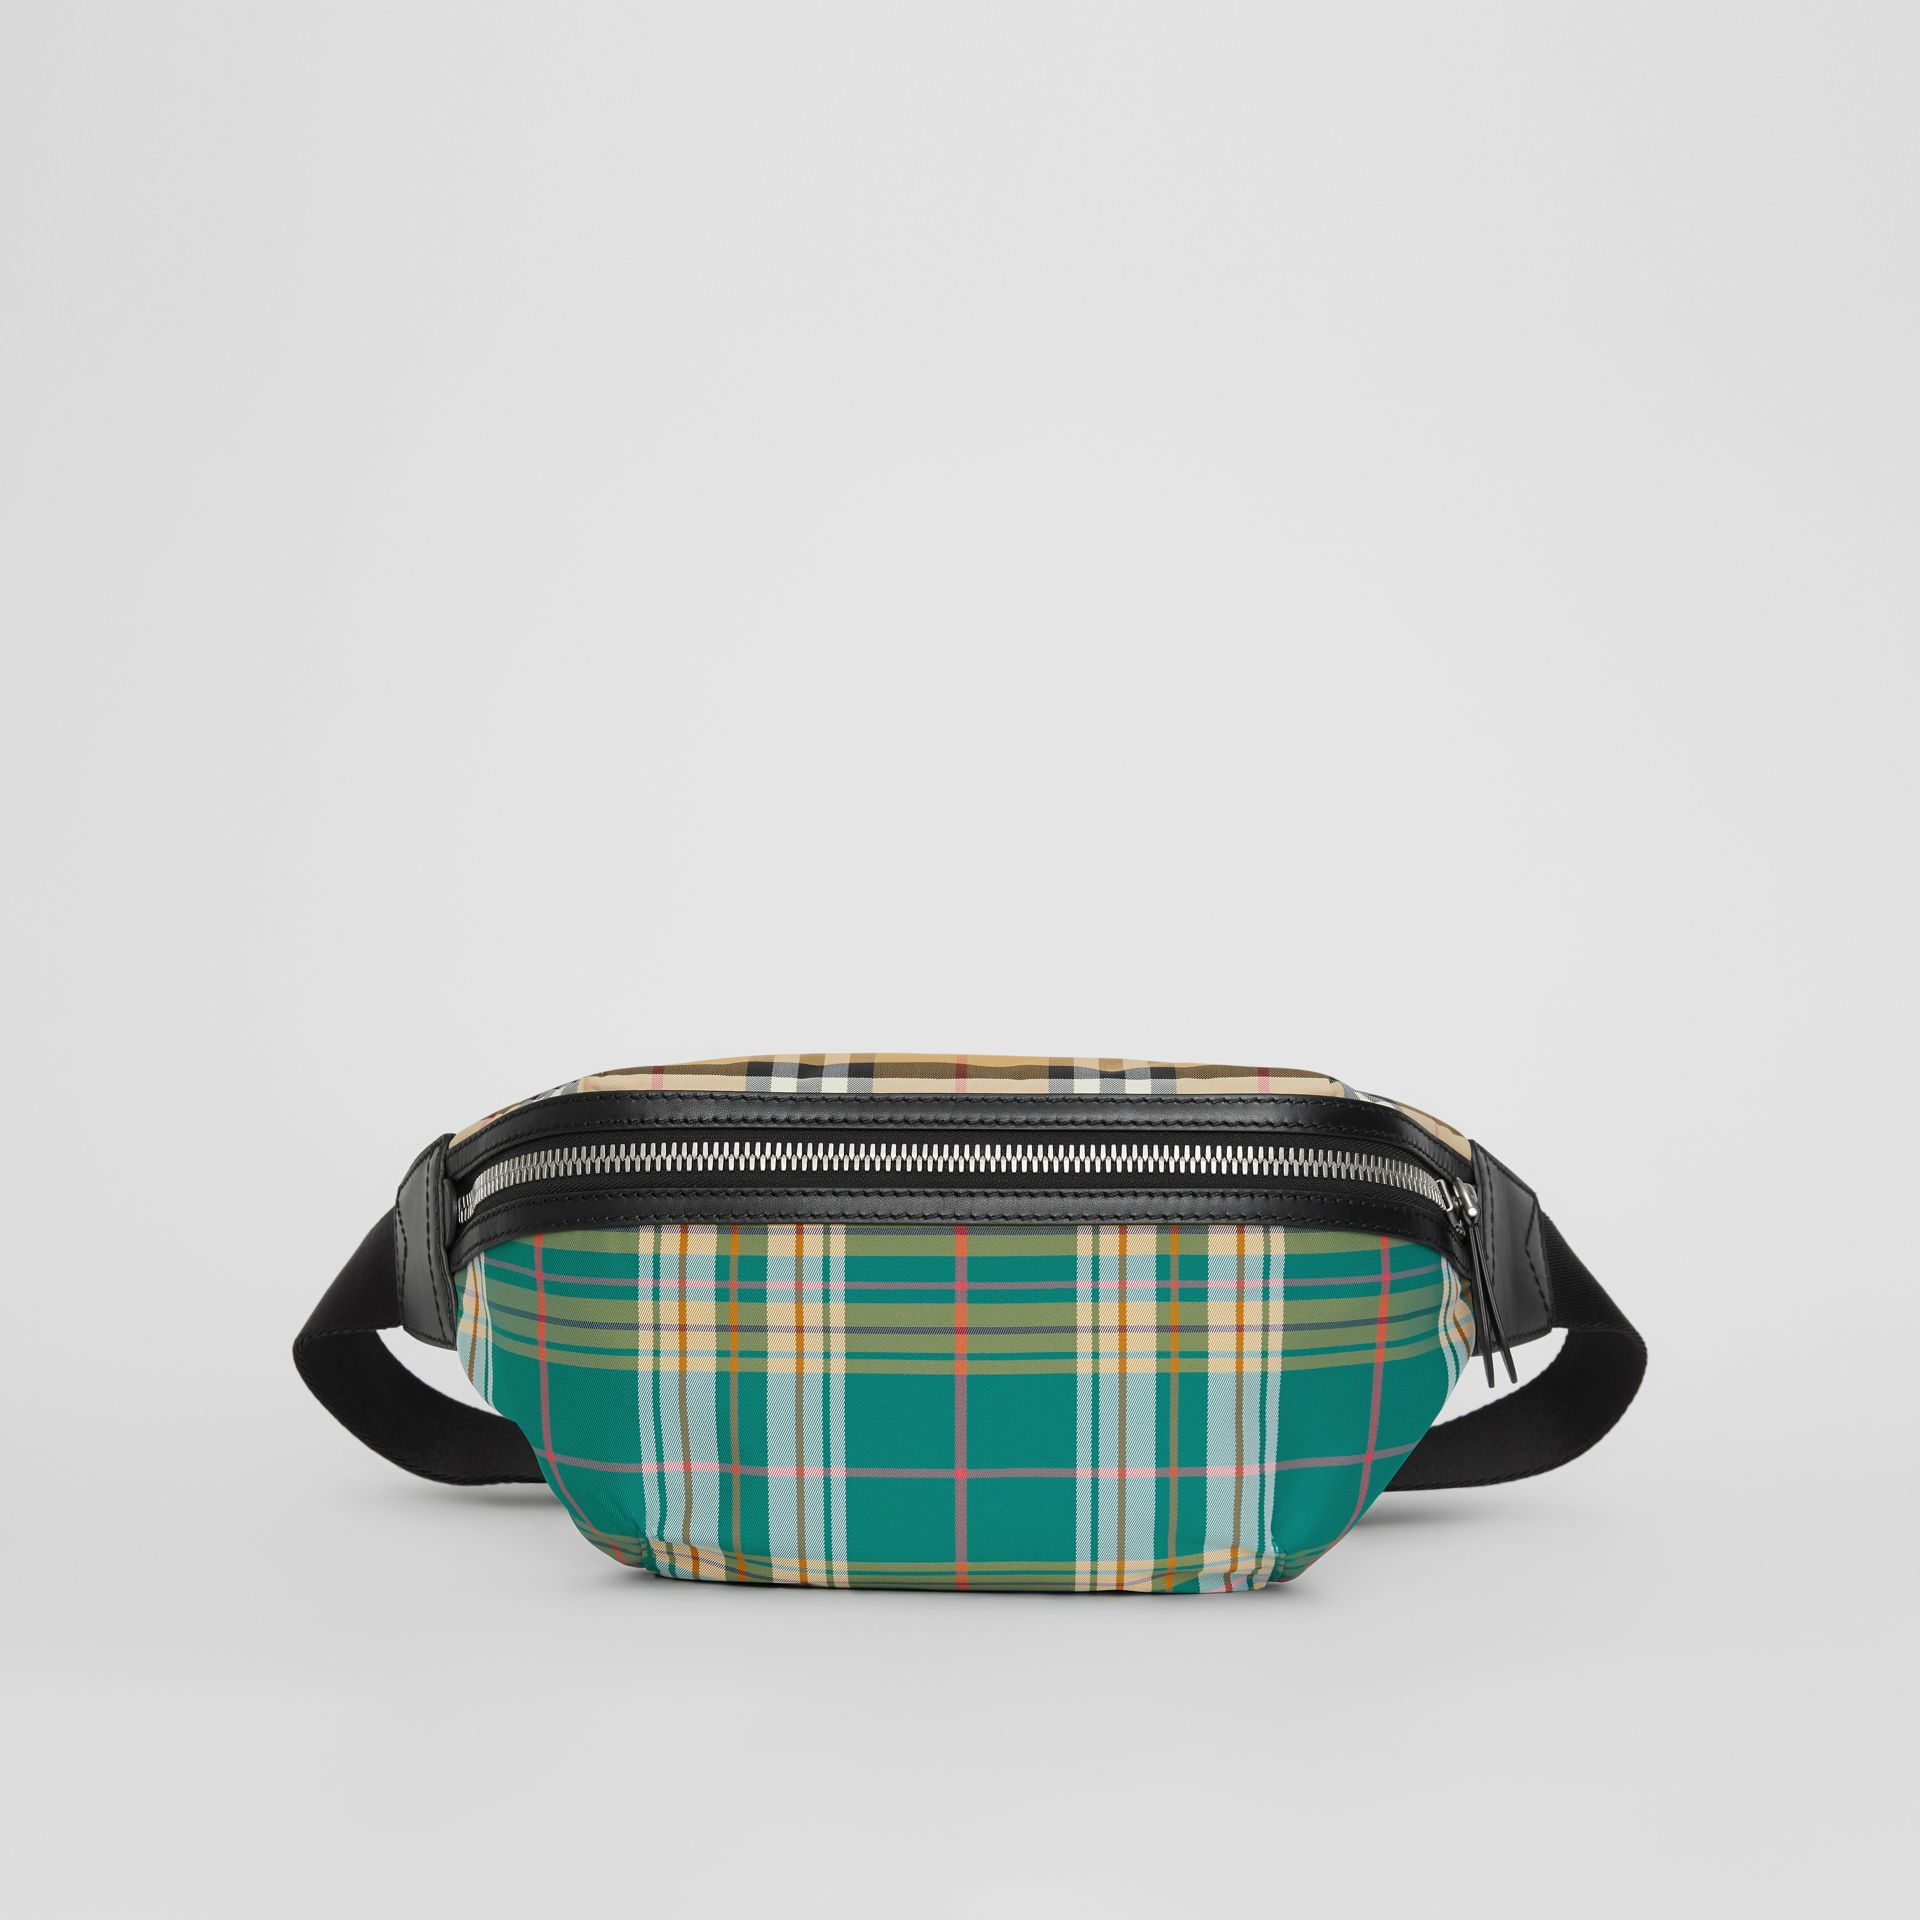 Medium Vintage Check and Tartan Bum Bag in Pine Green | Burberry - gallery image 2